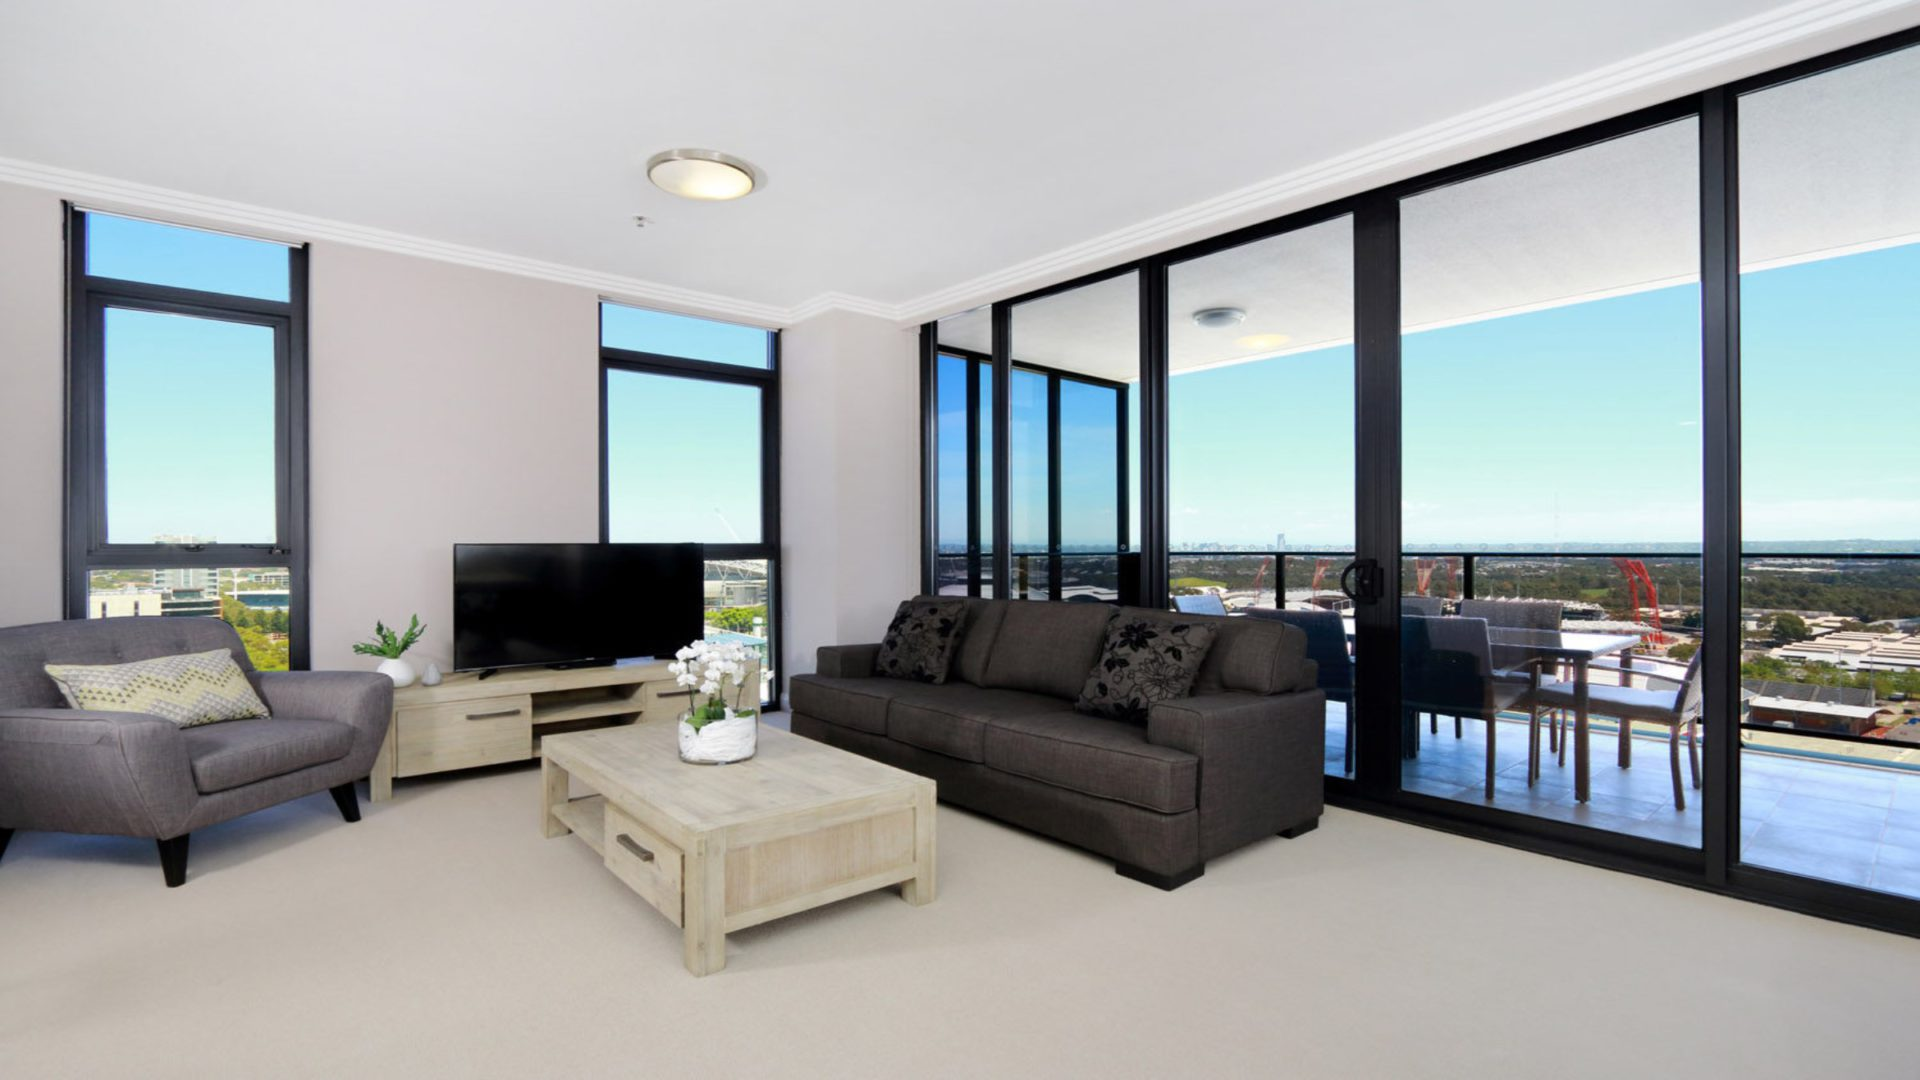 Australia Towers // 3 Bed 2 Bath Spacious and Modern Apartment, Olympic Park Views - 17.03